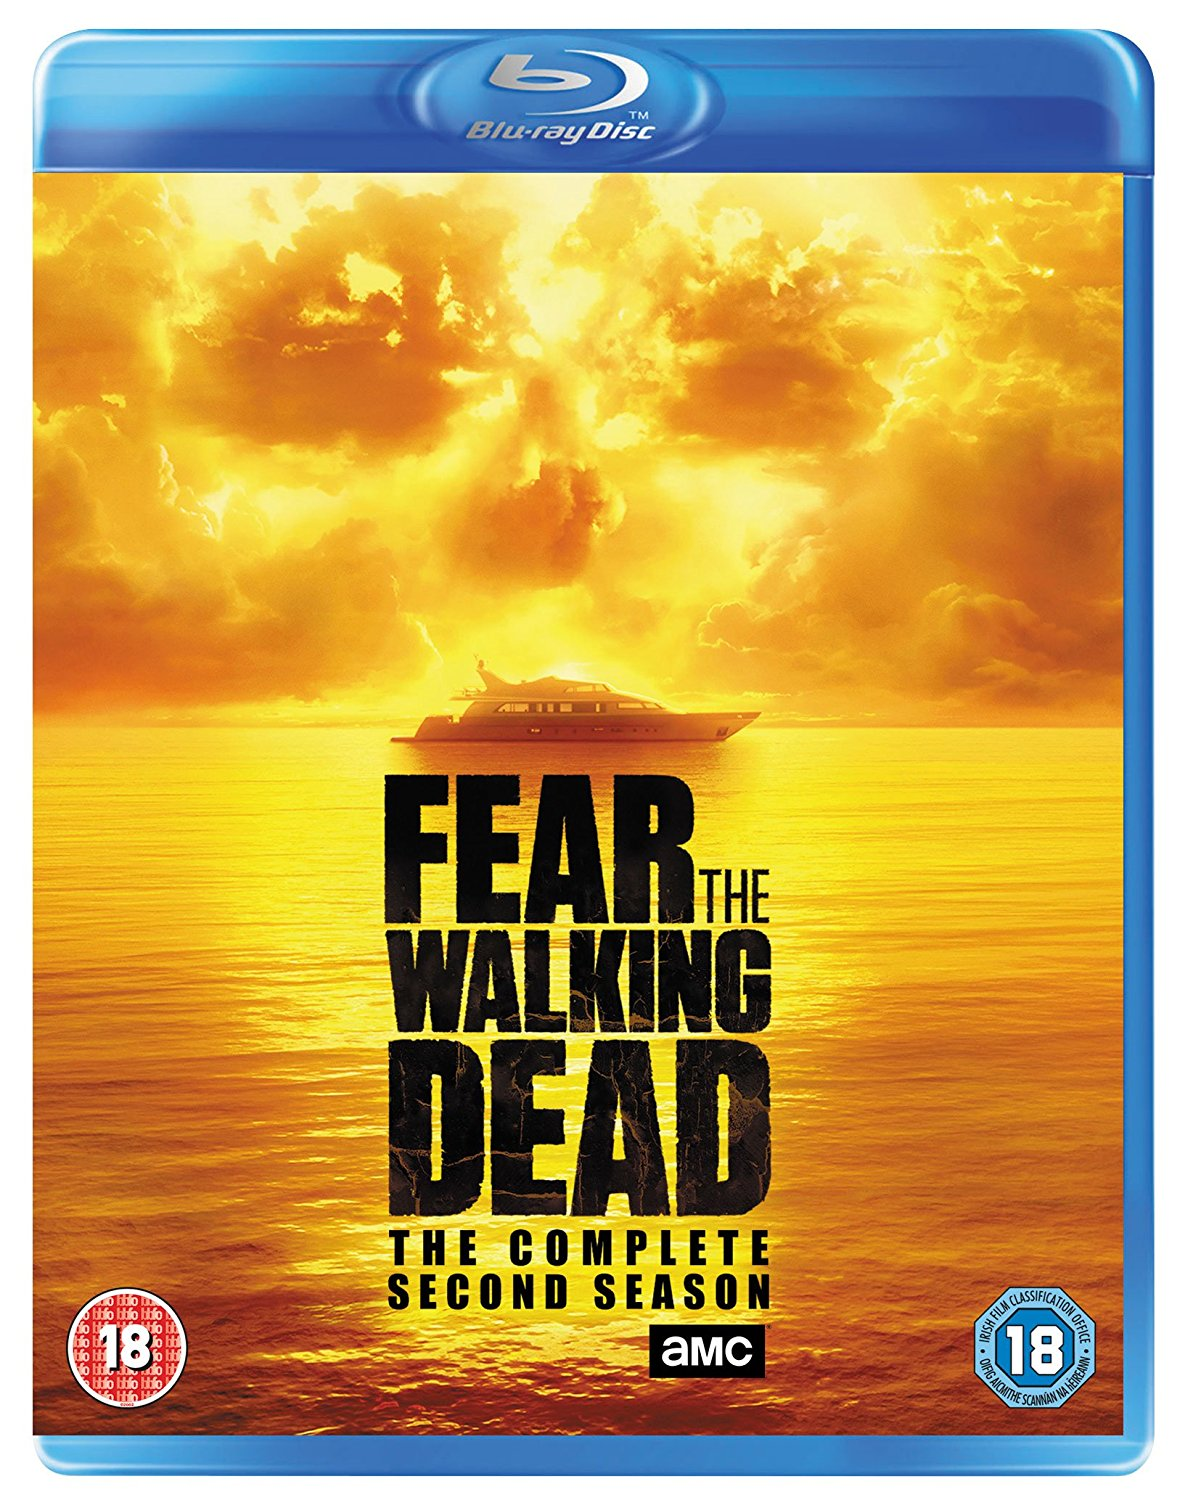 Fear The Walking Dead Season 2 Blu-ray review